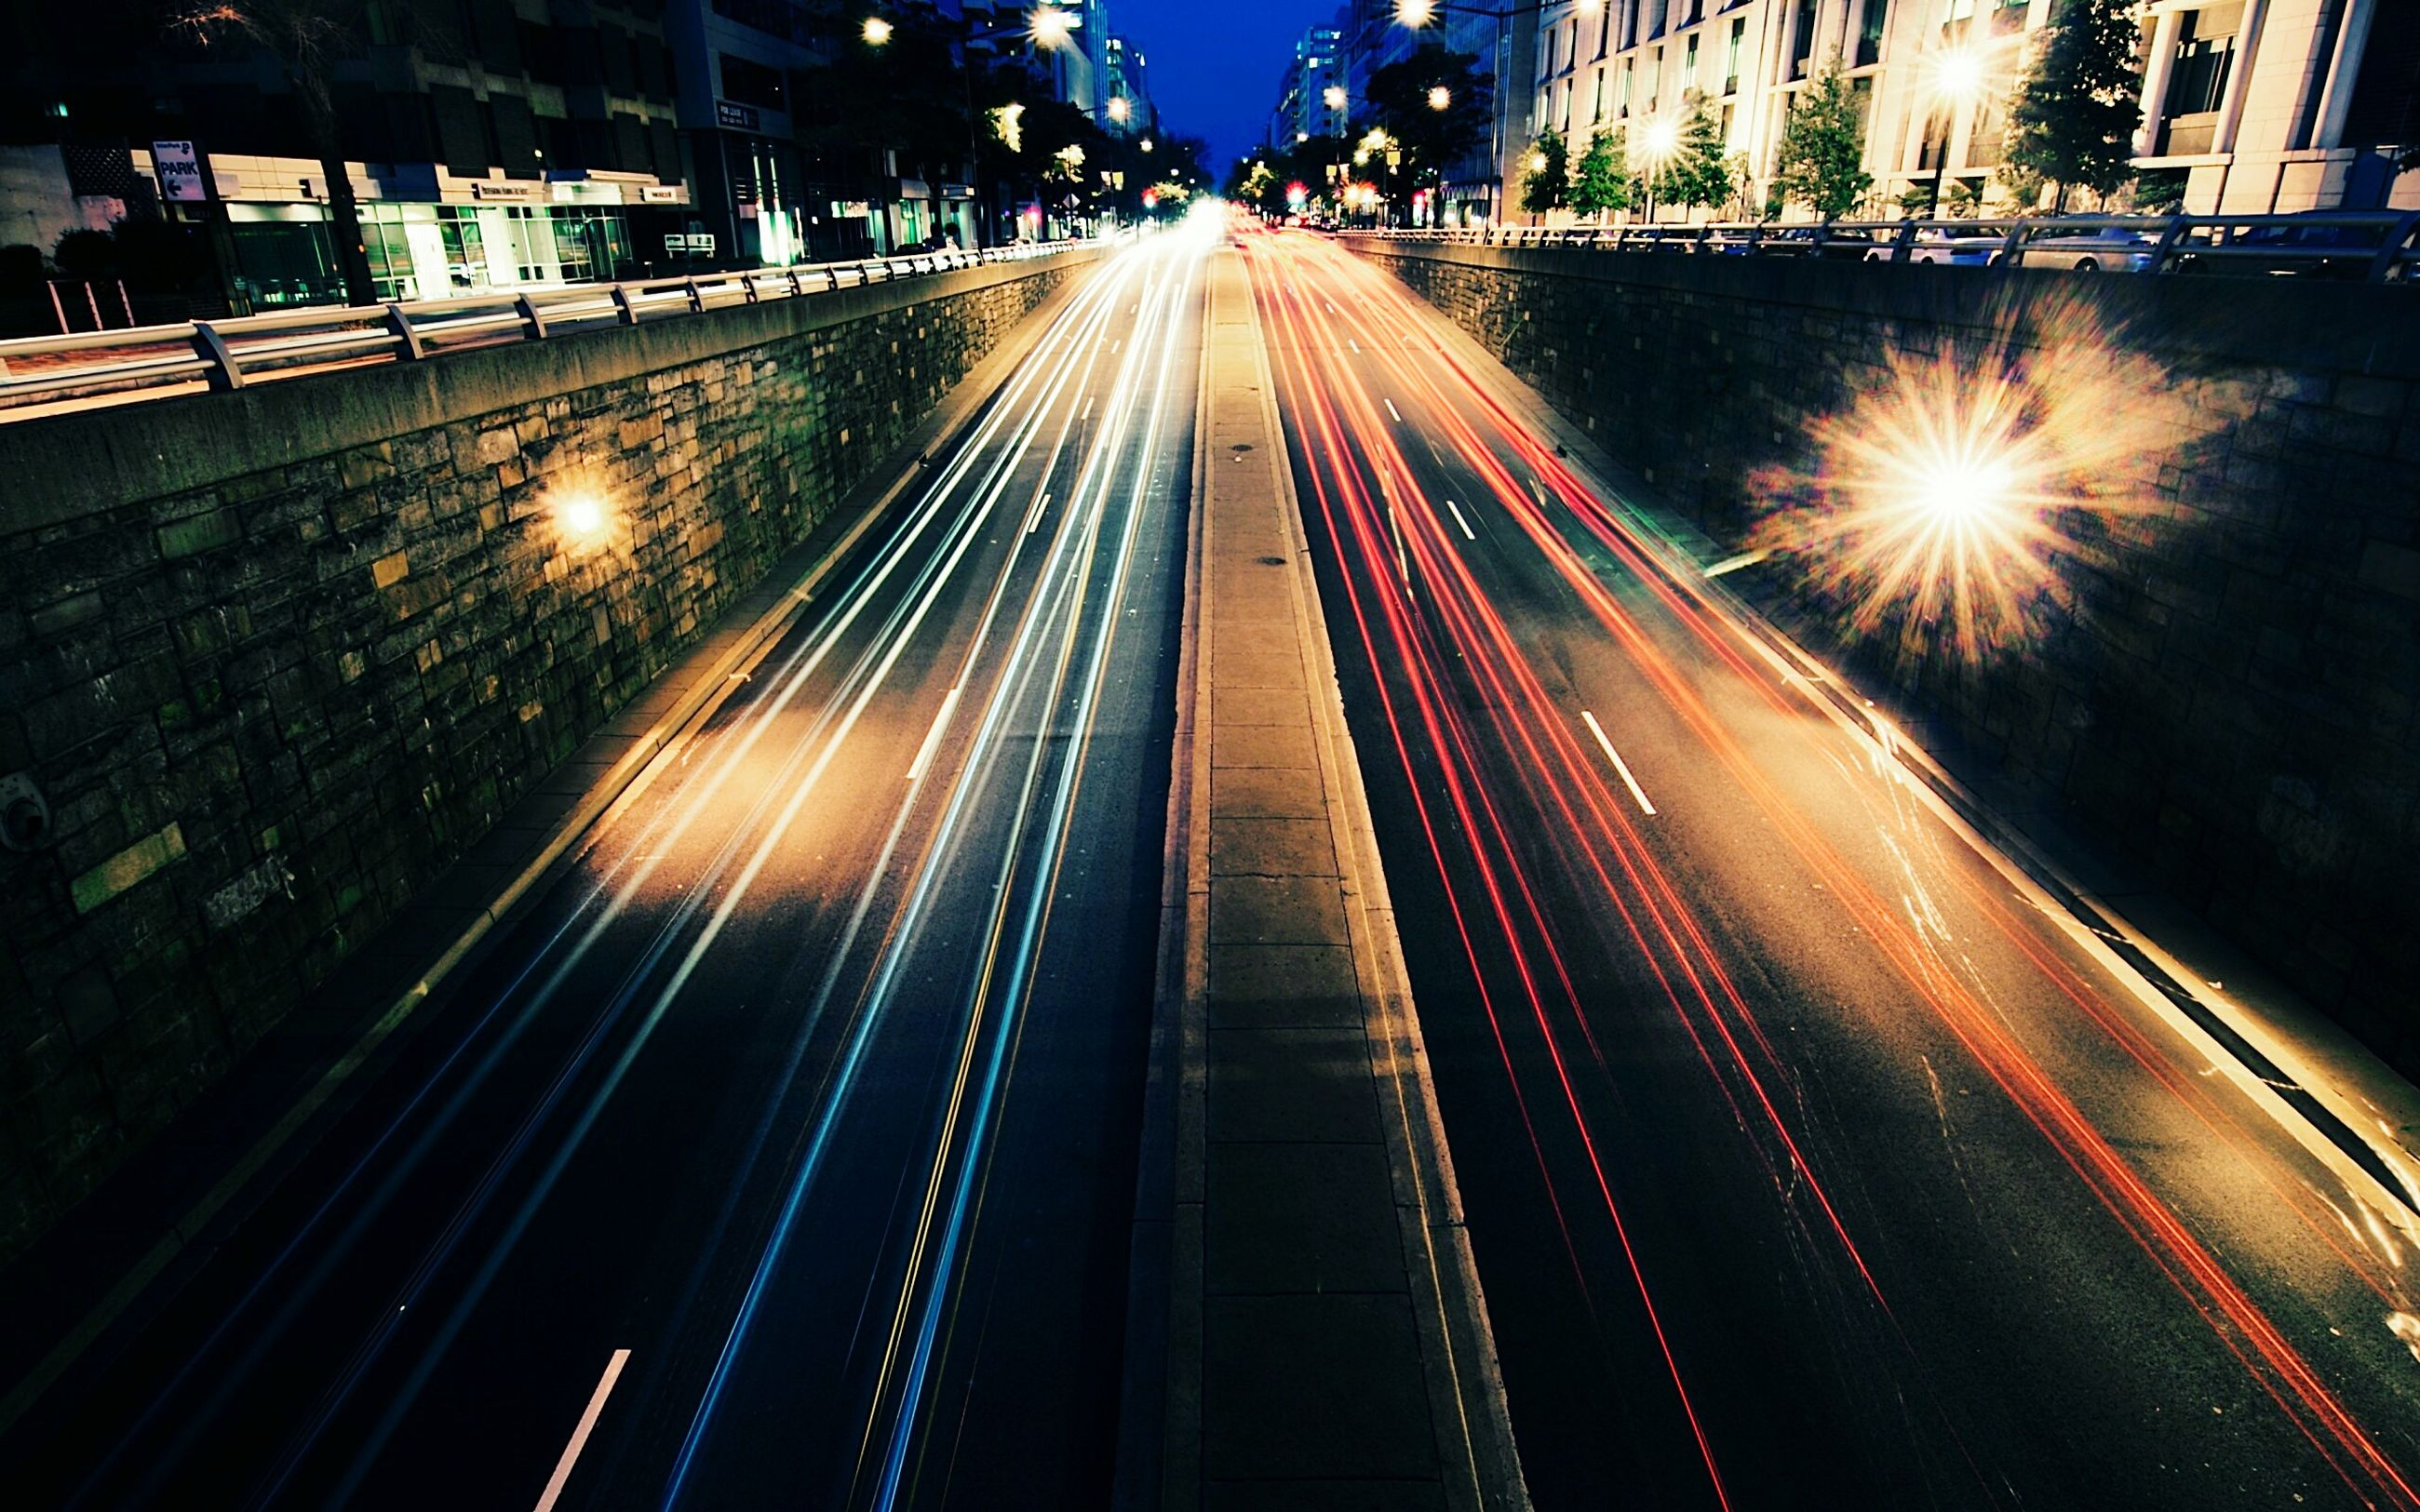 illuminated, transportation, night, speed, light trail, city, long exposure, street, traffic, motion, the way forward, architecture, built structure, lighting equipment, outdoors, car, road, city life, building exterior, land vehicle, no people, bridge - man made structure, sky, suspension bridge, cityscape, high street